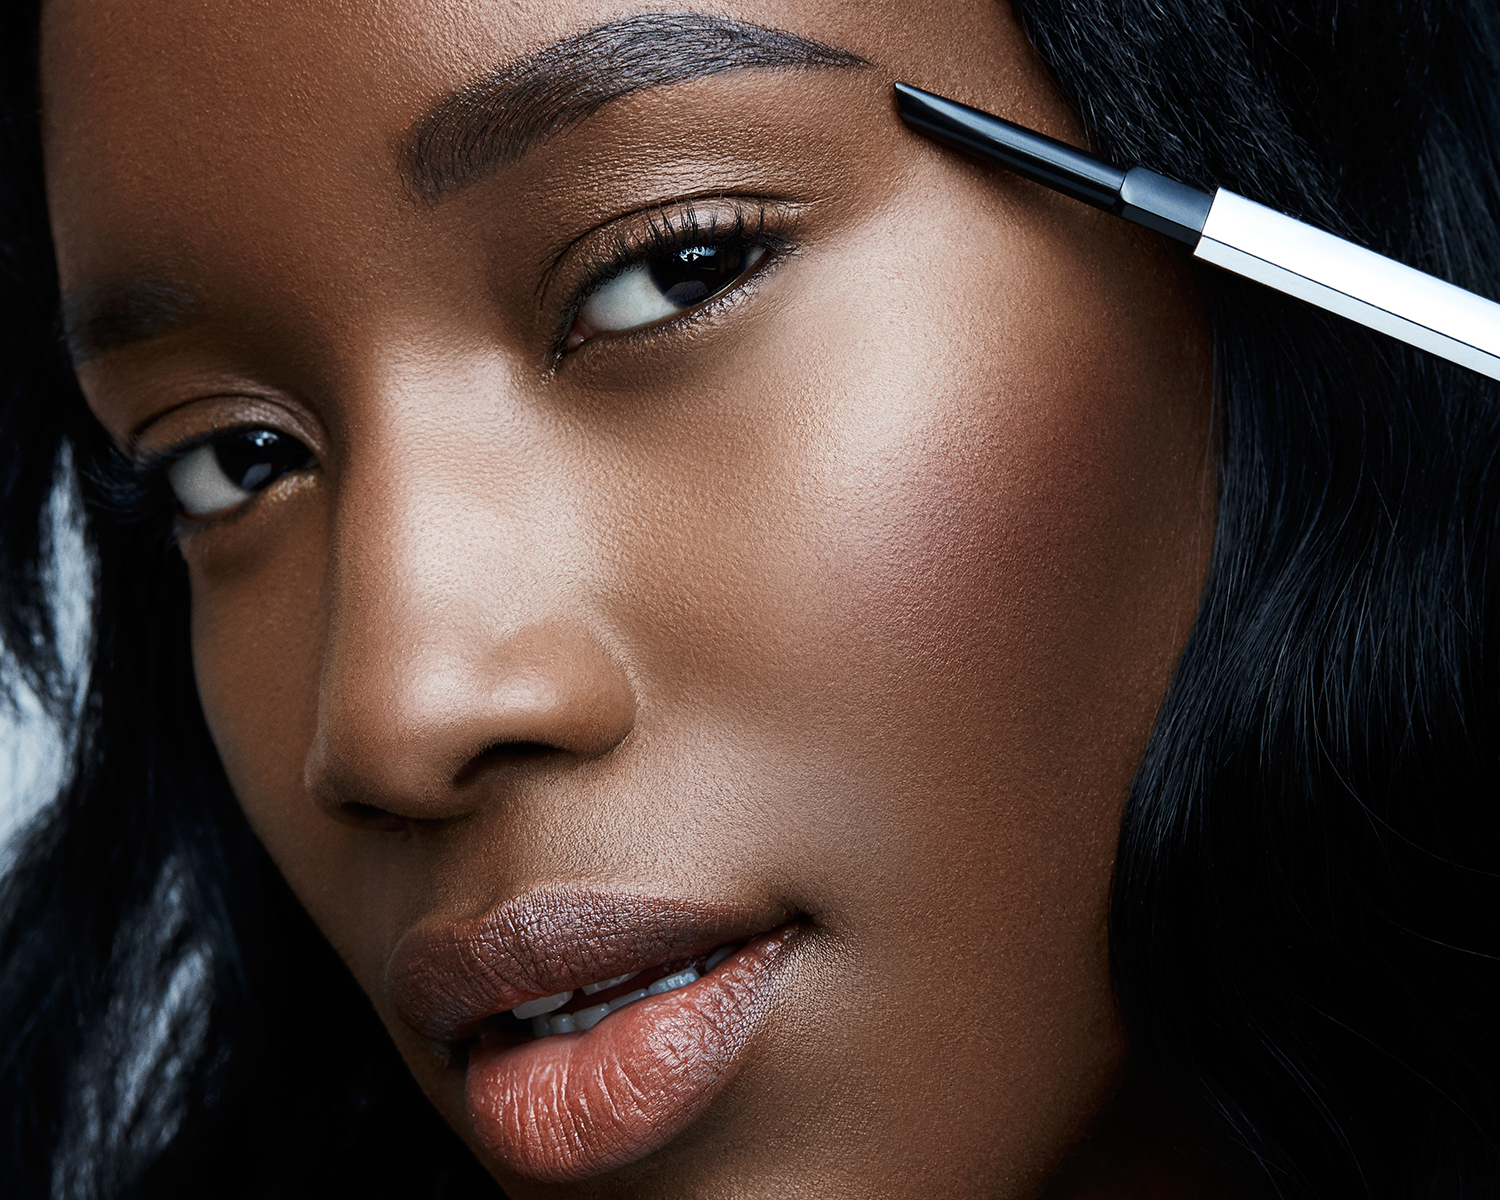 BeautyPhotographer_BeautyEditorial_By_BriJohnson_0079.jpg